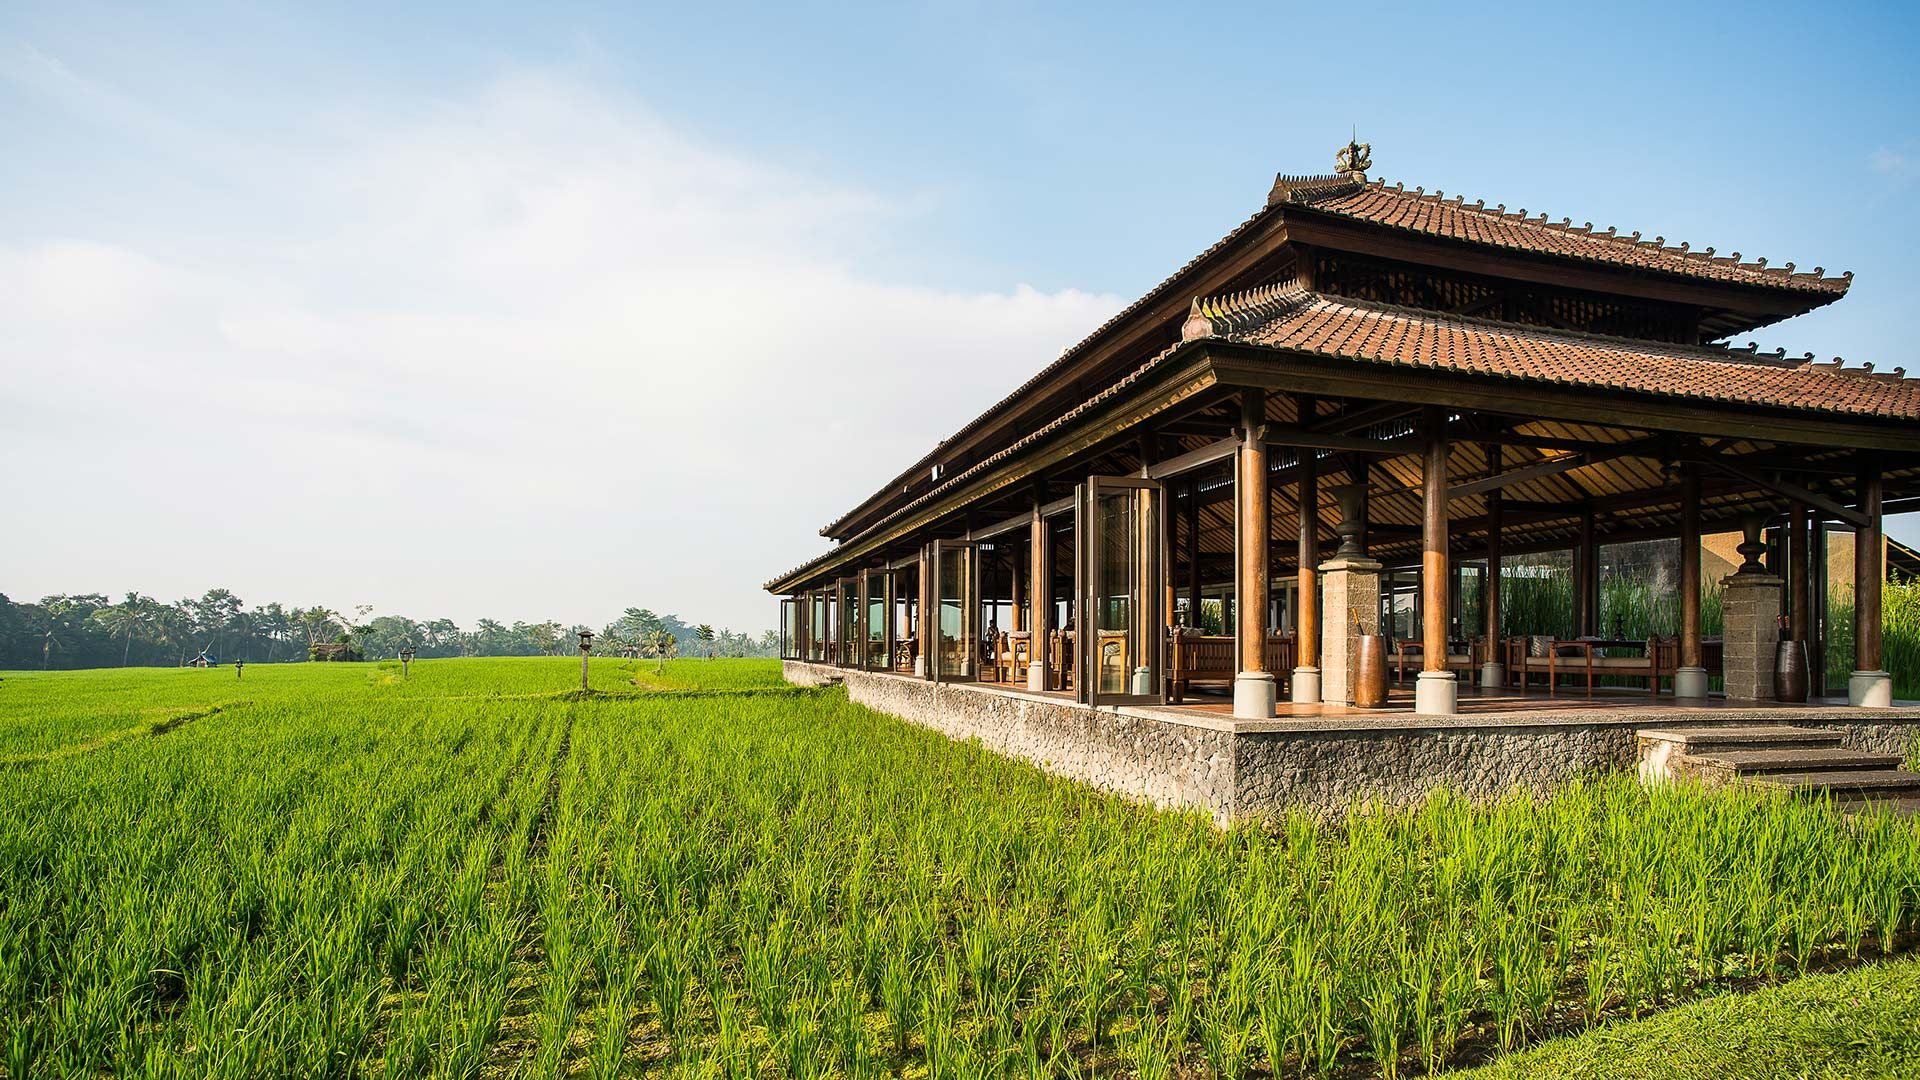 Luxury Hotel Marketing | The Chedi Club Tanah Gajah Ubud Bali | Hotel Surrounded by Rice Paddies